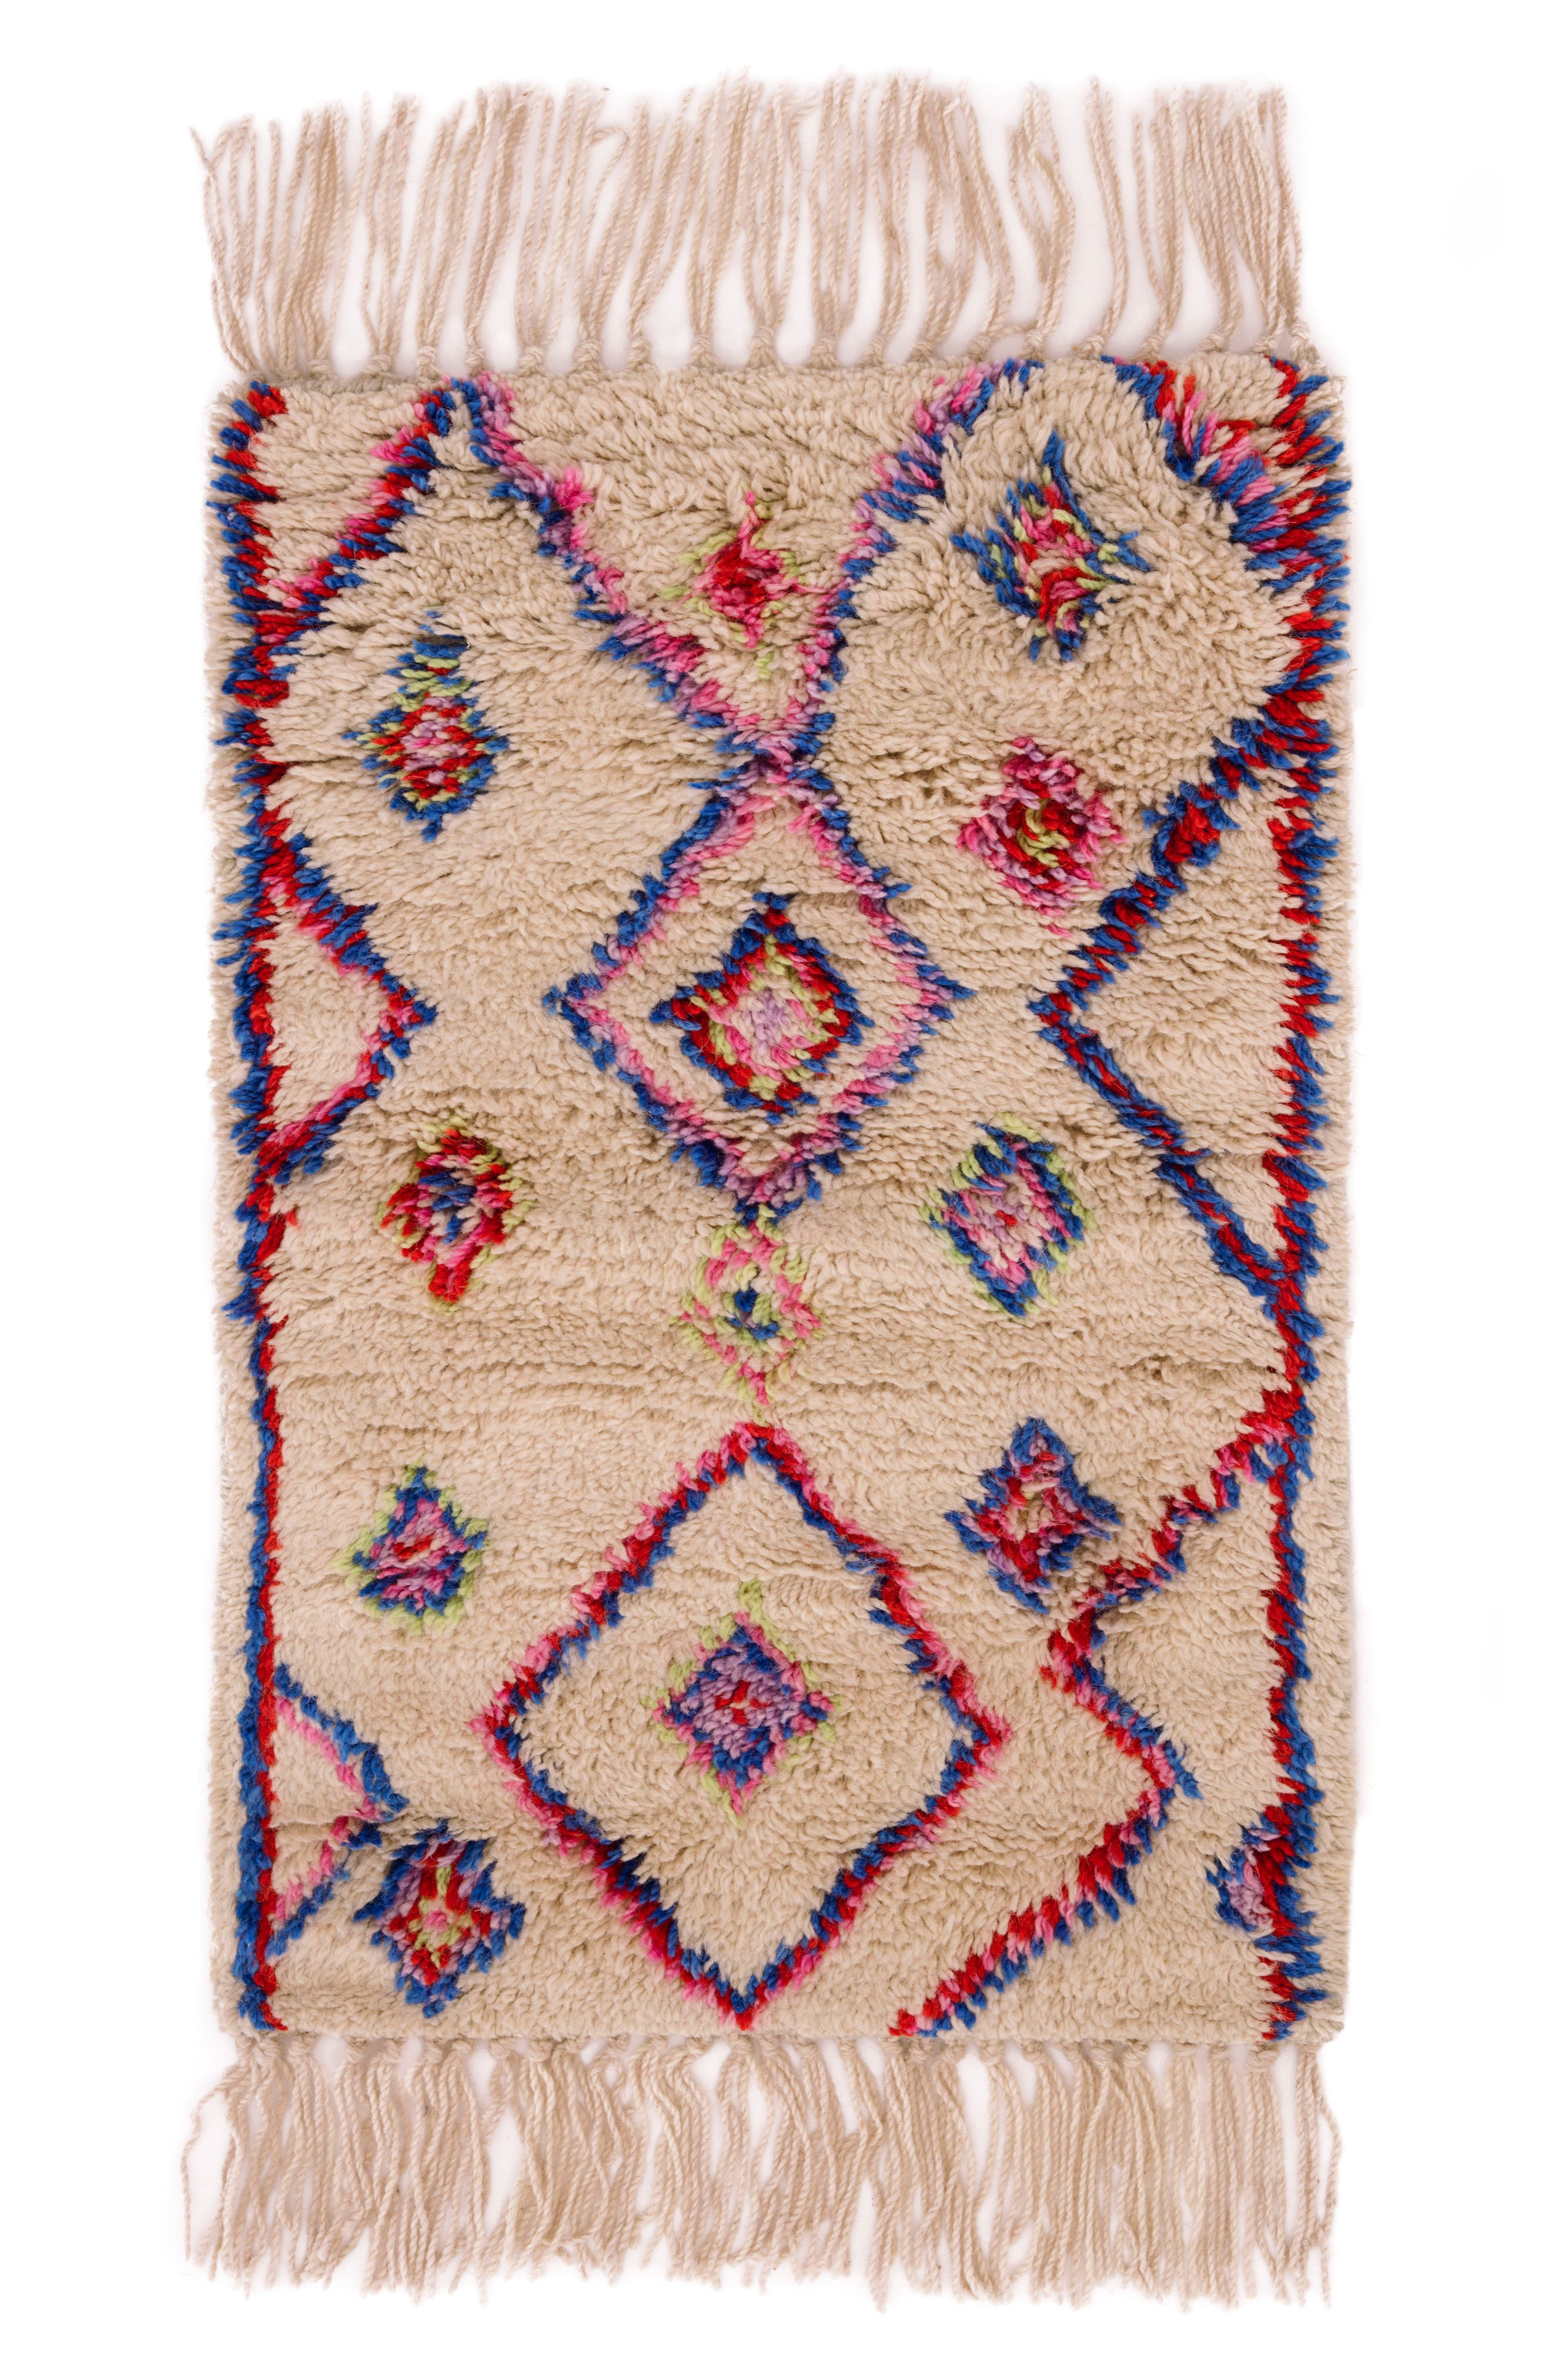 Tilda Hand Knotted Wool Blend Rug,                             Main thumbnail 1, color,                             250